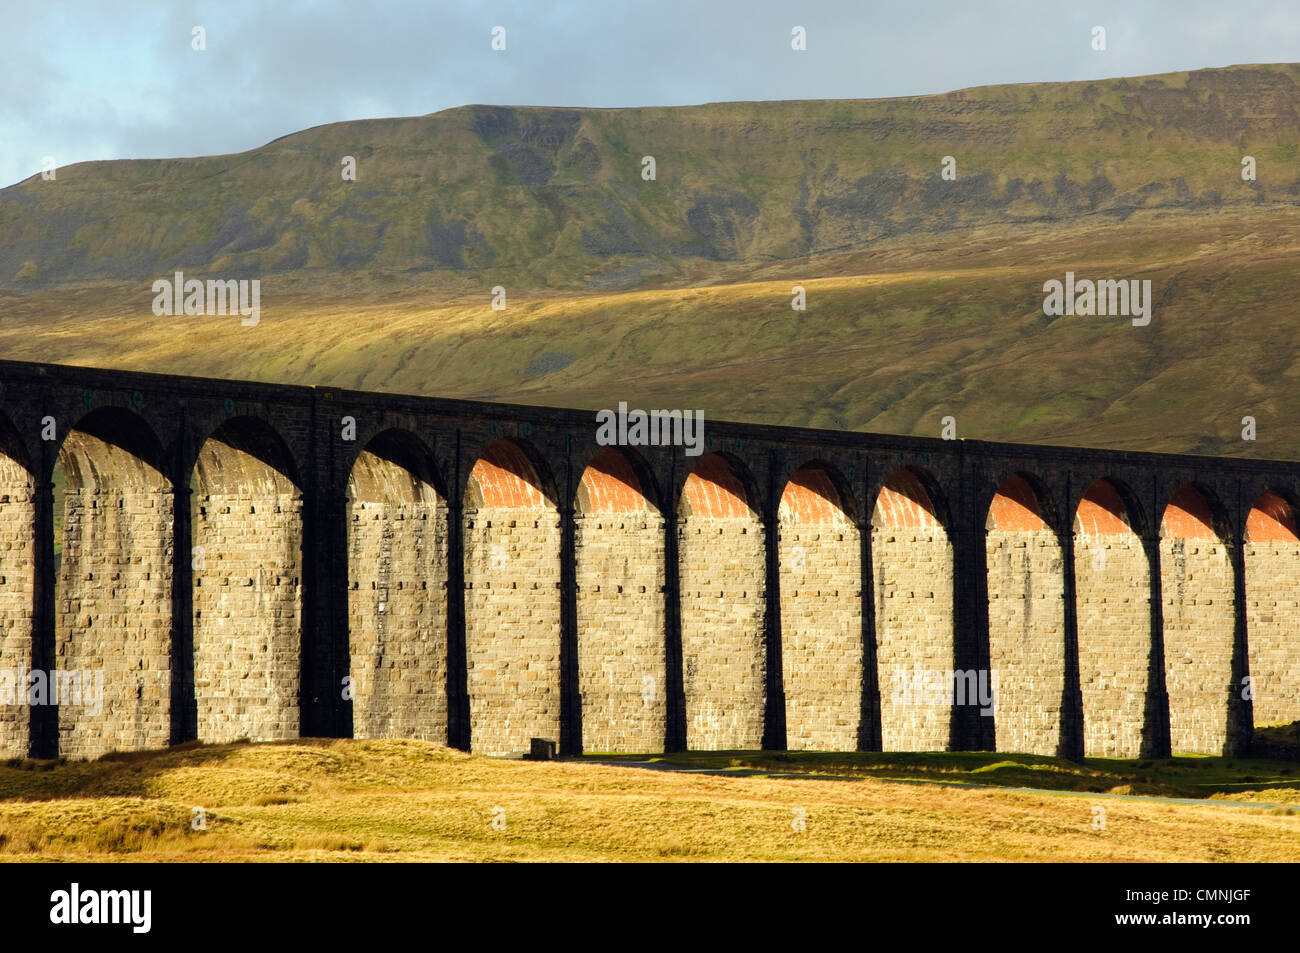 The Ribblehead Viaduct on the Settle-Carlisle railway line in the Yorkshire Dales National Park, England; Whernside - Stock Image